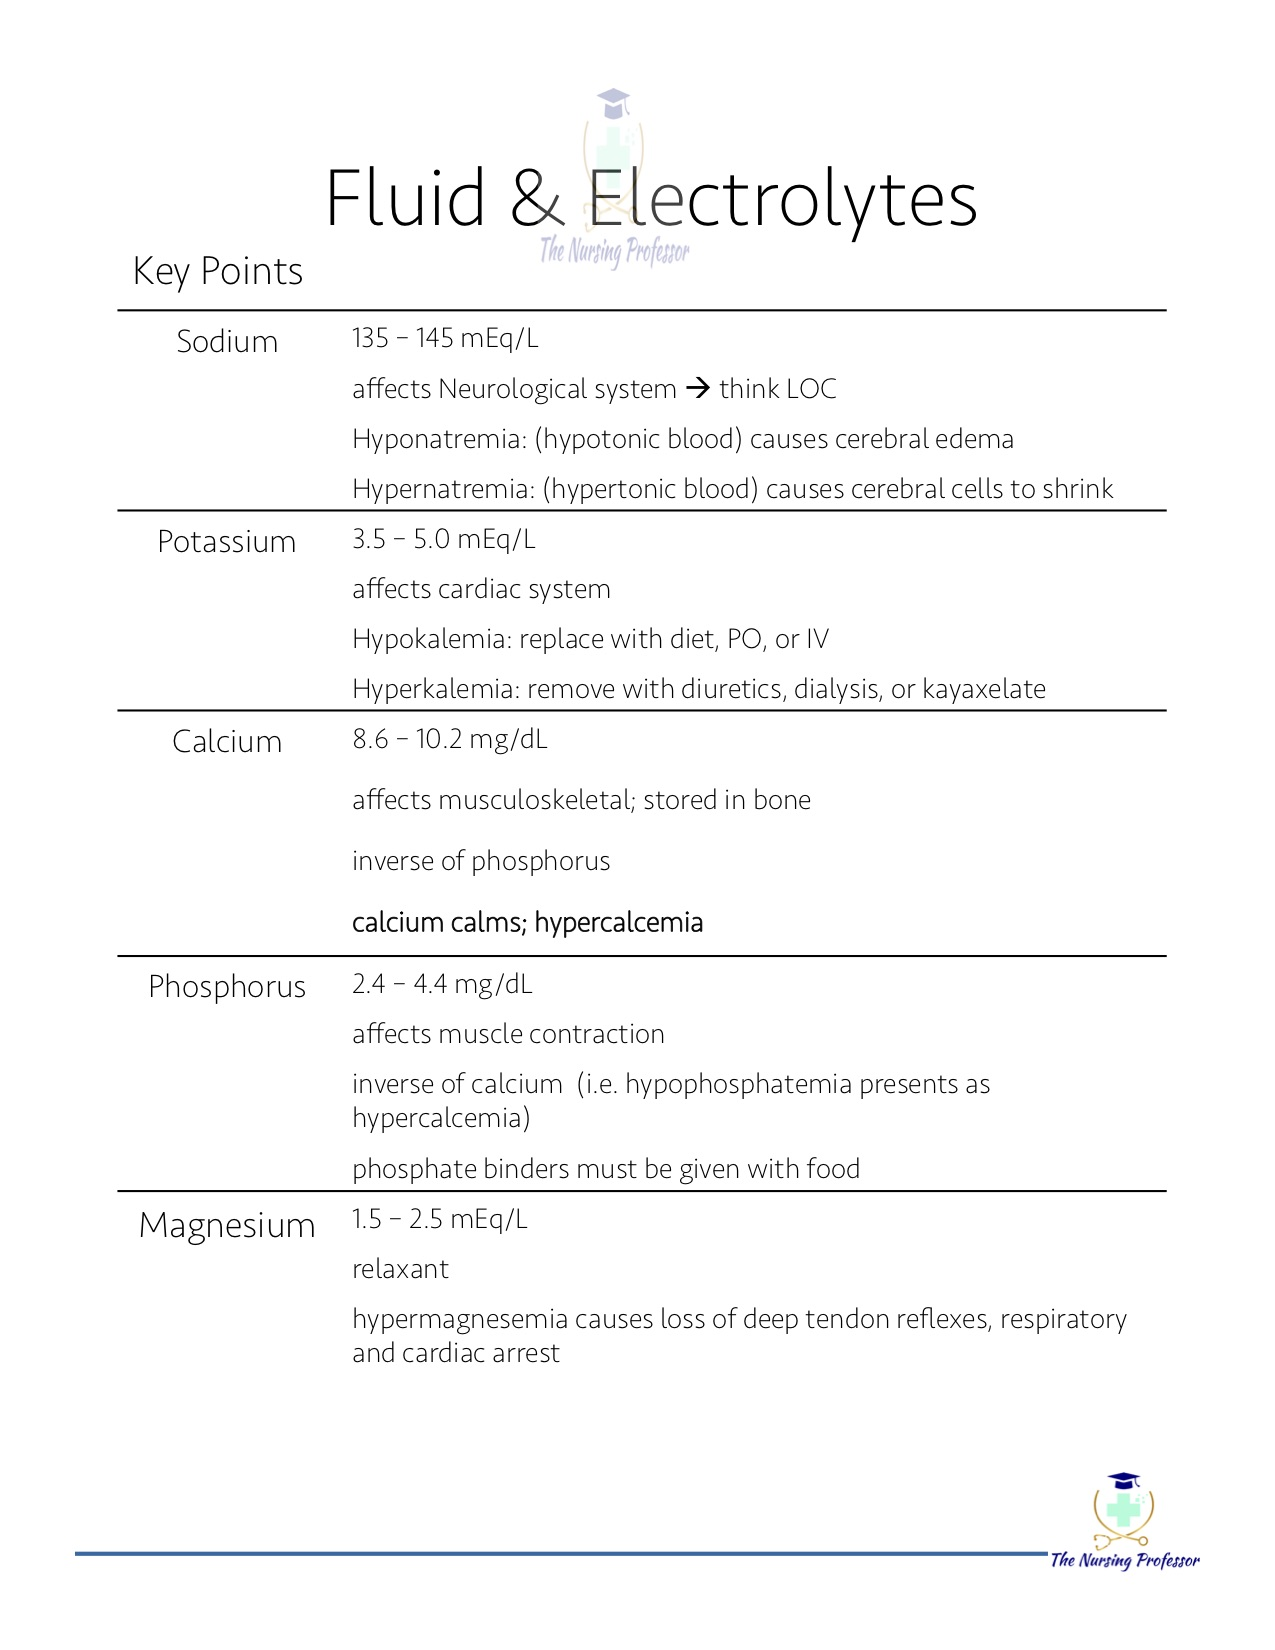 Fluid & Electrolytes Key Points2.jpg